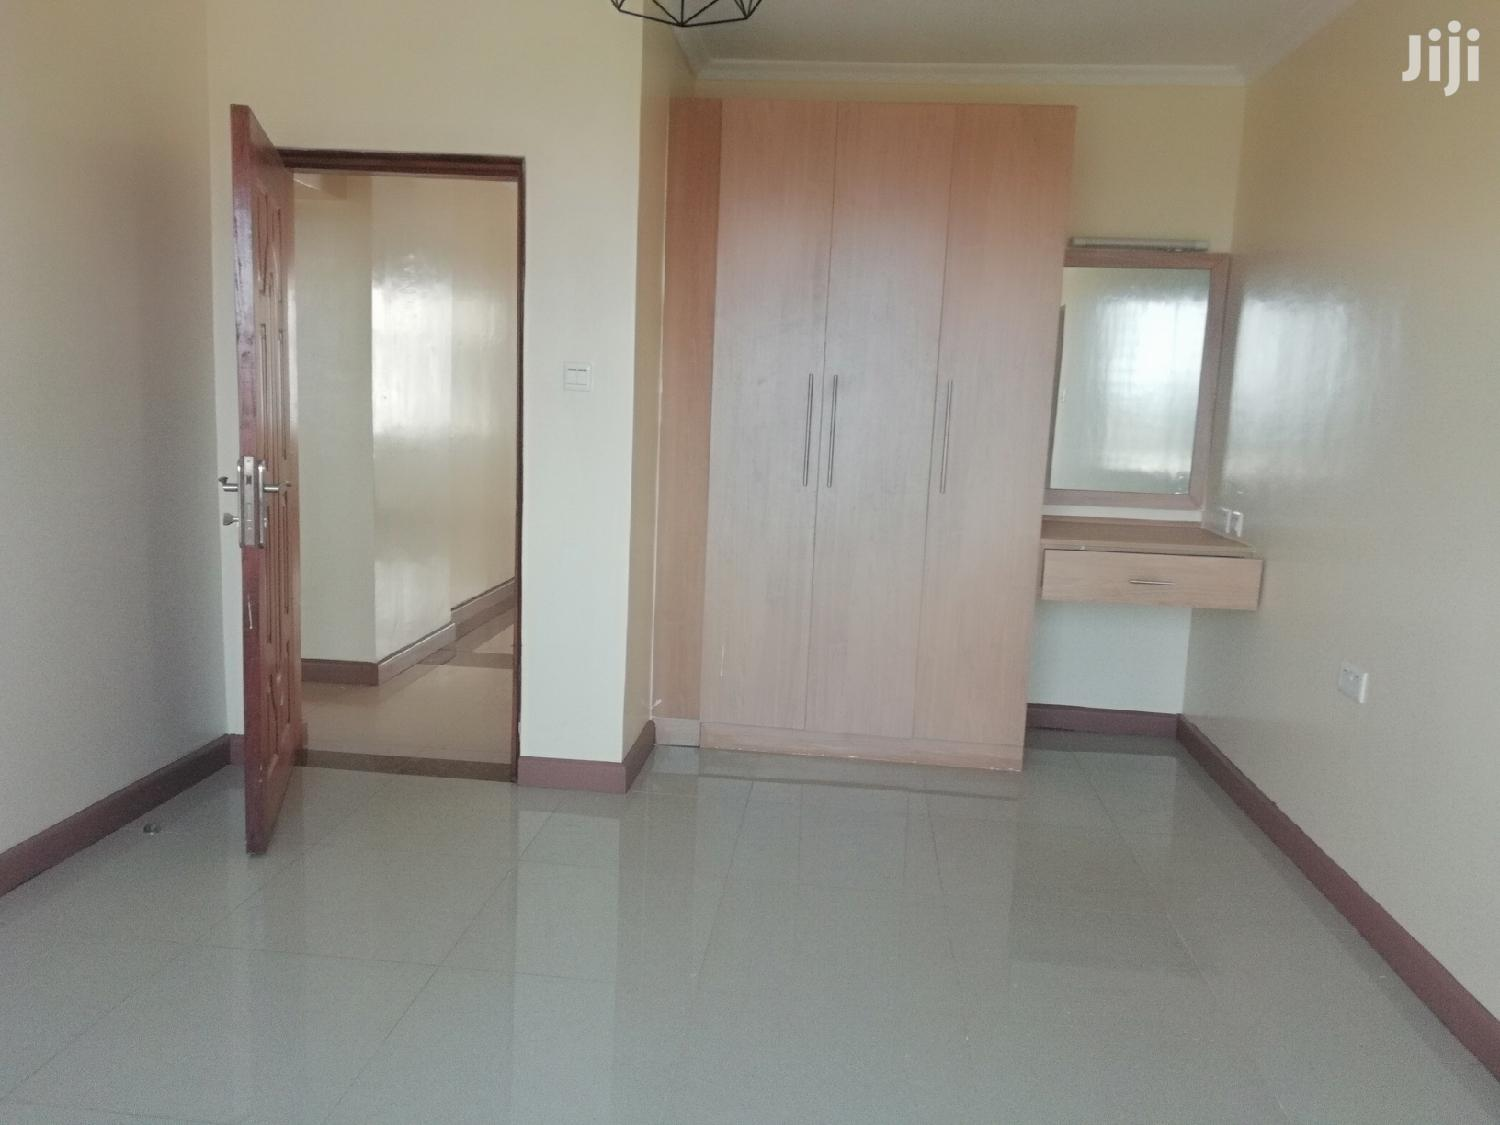 Luxury ;3br+Dsq Apartment All En-suite, Pool, Gym And Safe   Houses & Apartments For Rent for sale in Lavington, Nairobi, Kenya